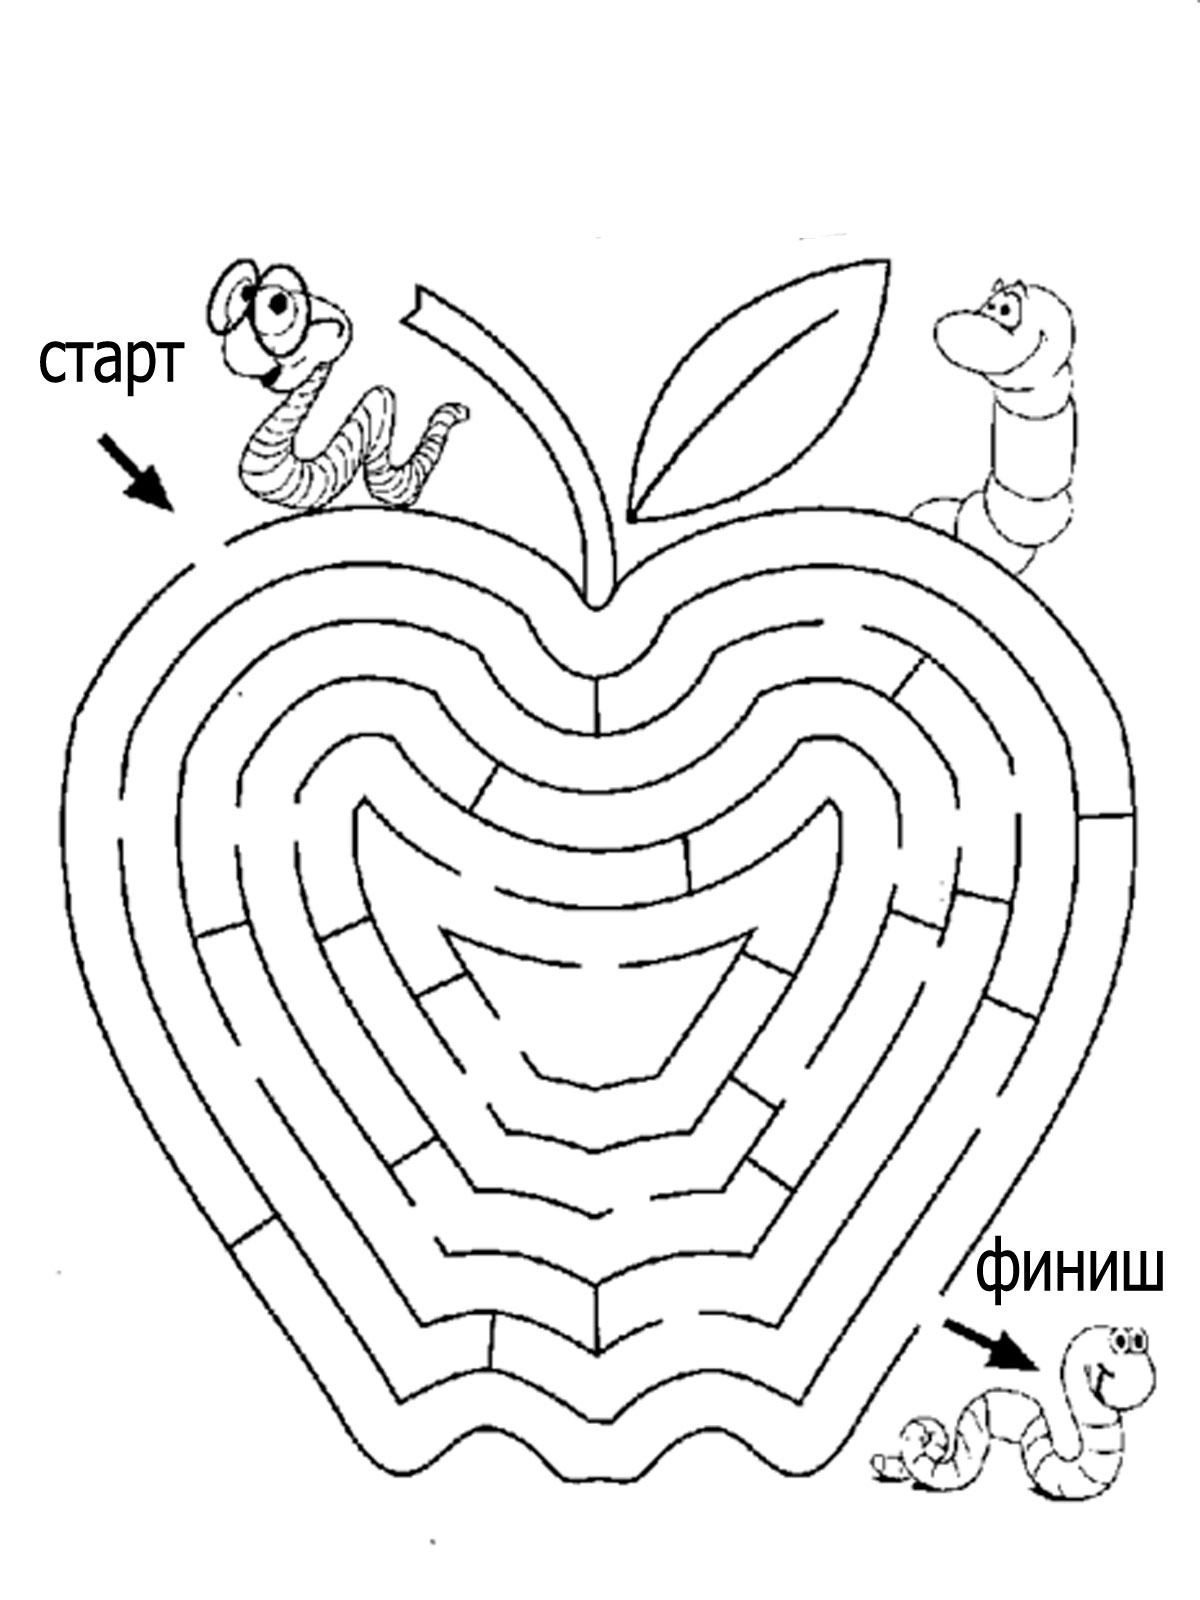 http://stranakids.ru/wp-content/uploads/2012/06/coloring-labyrinth16.jpg